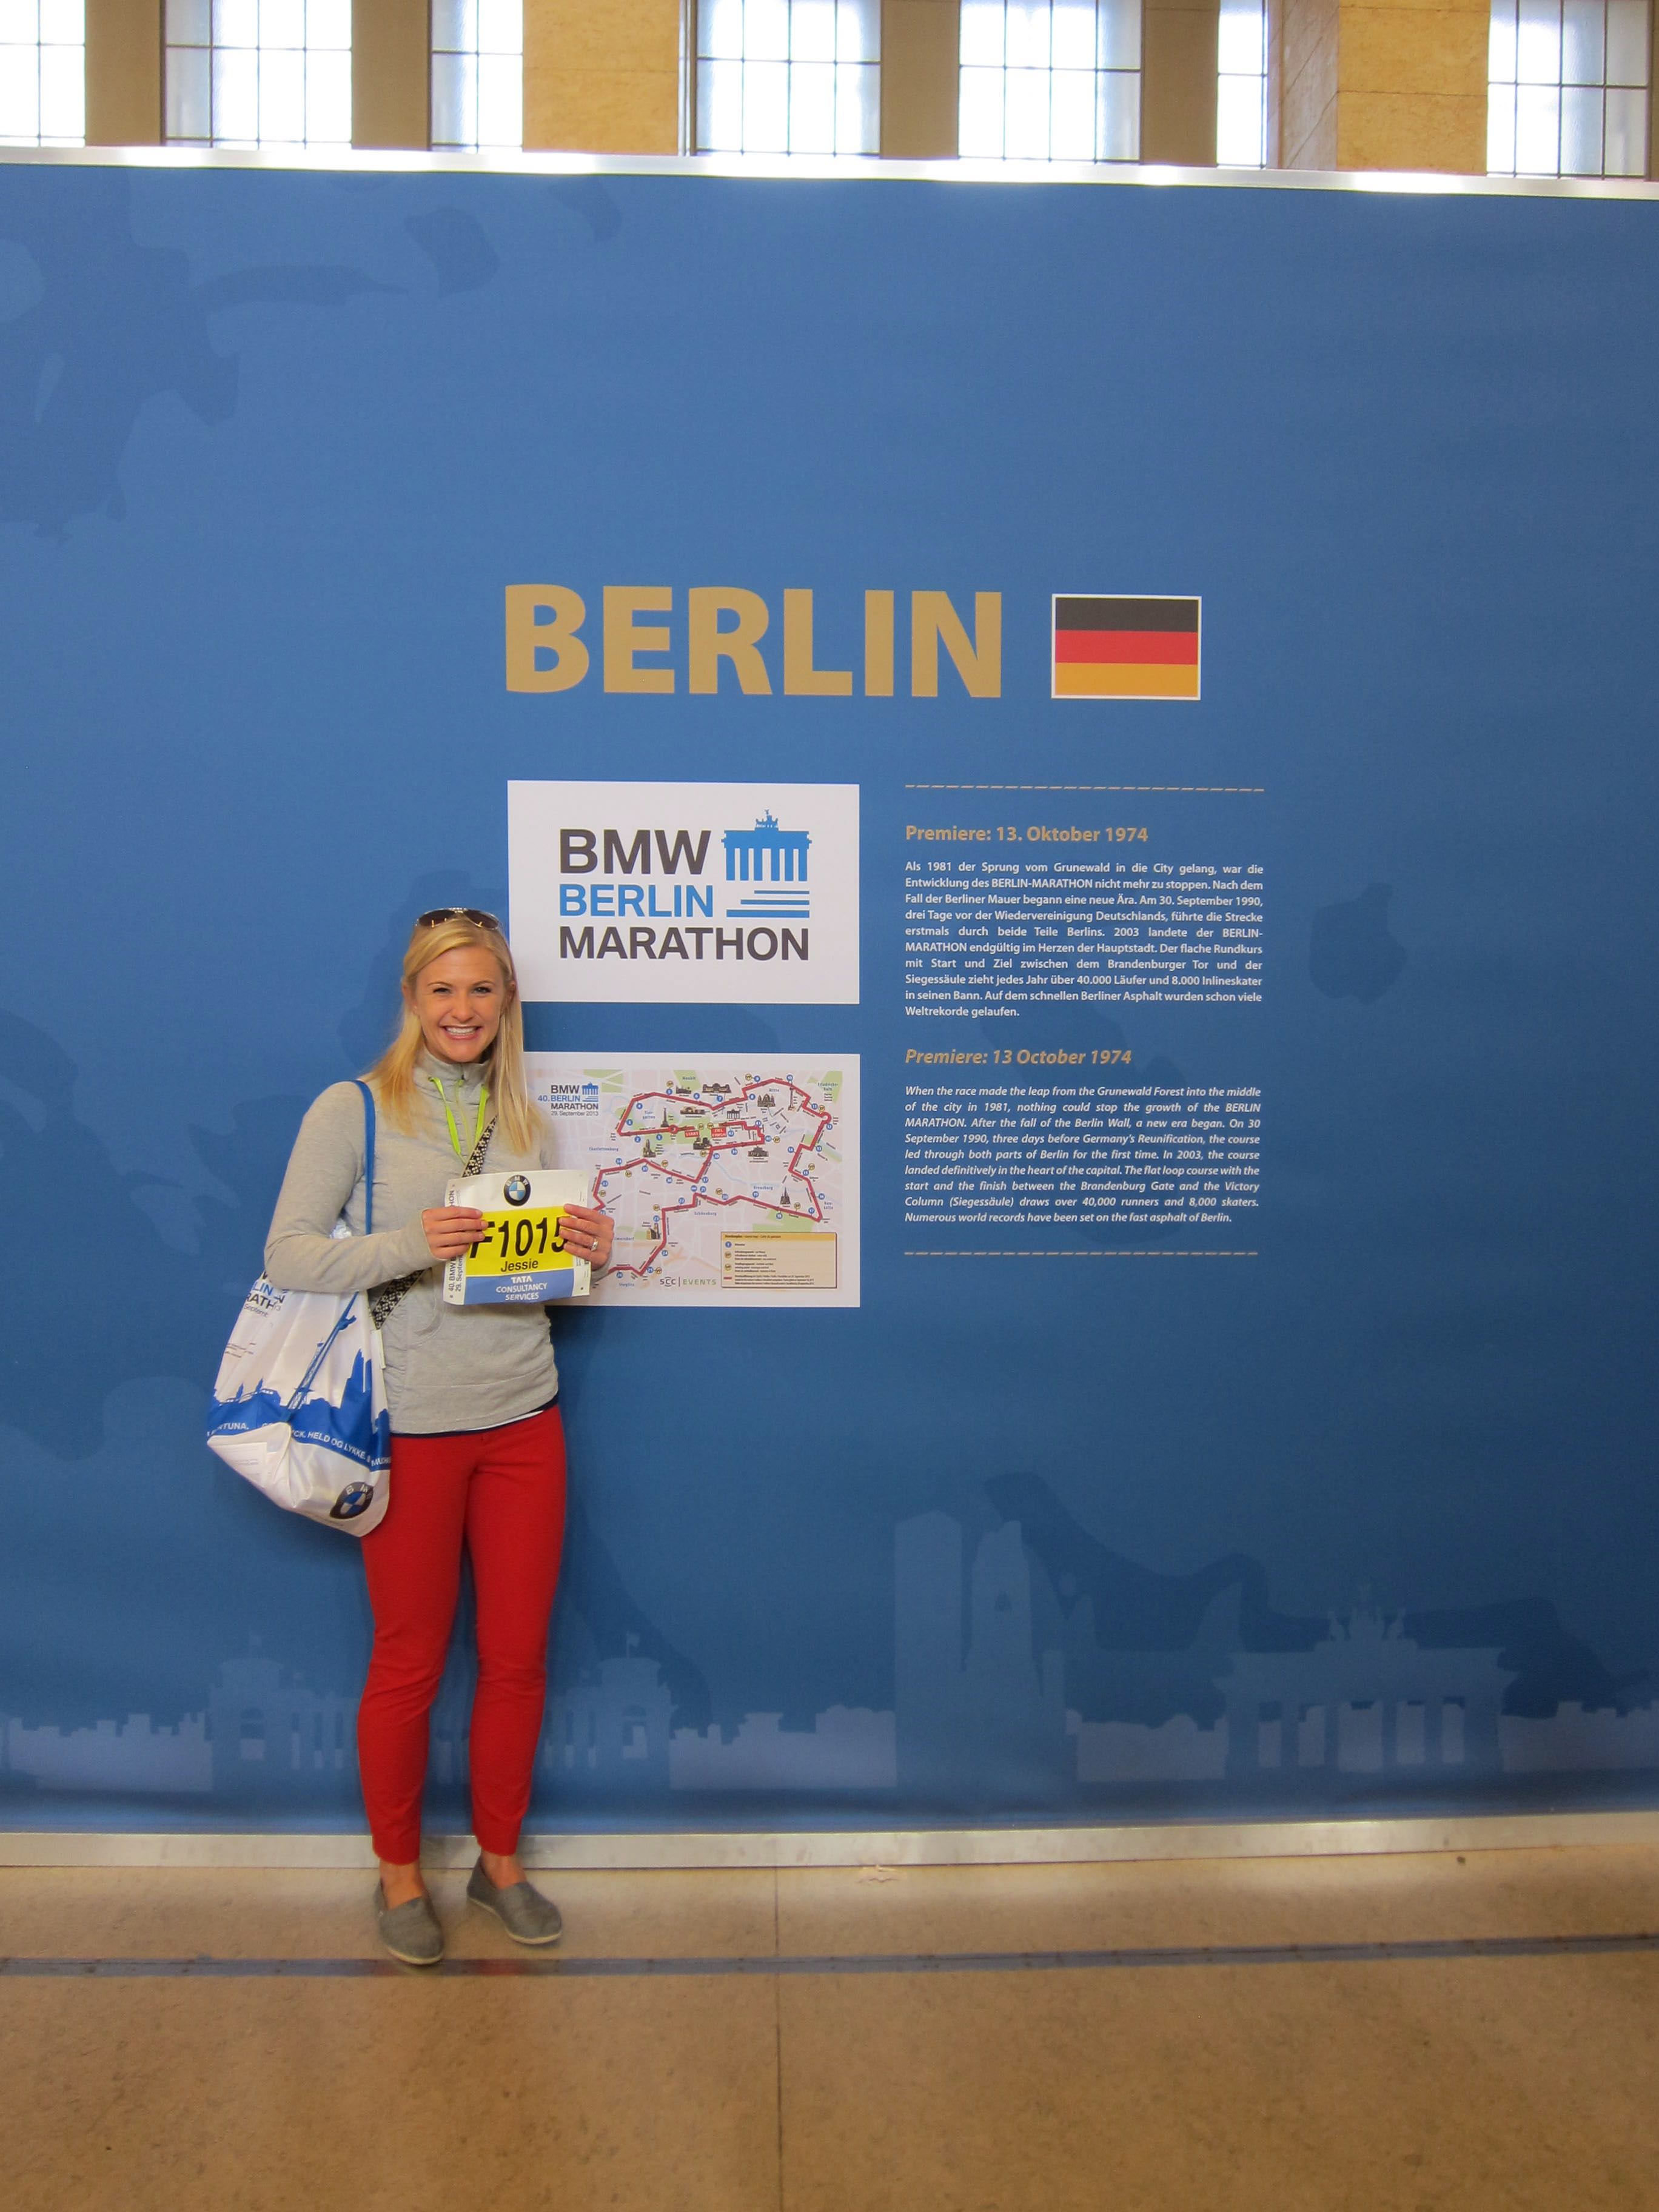 Review of the Berlin Marathon 2013